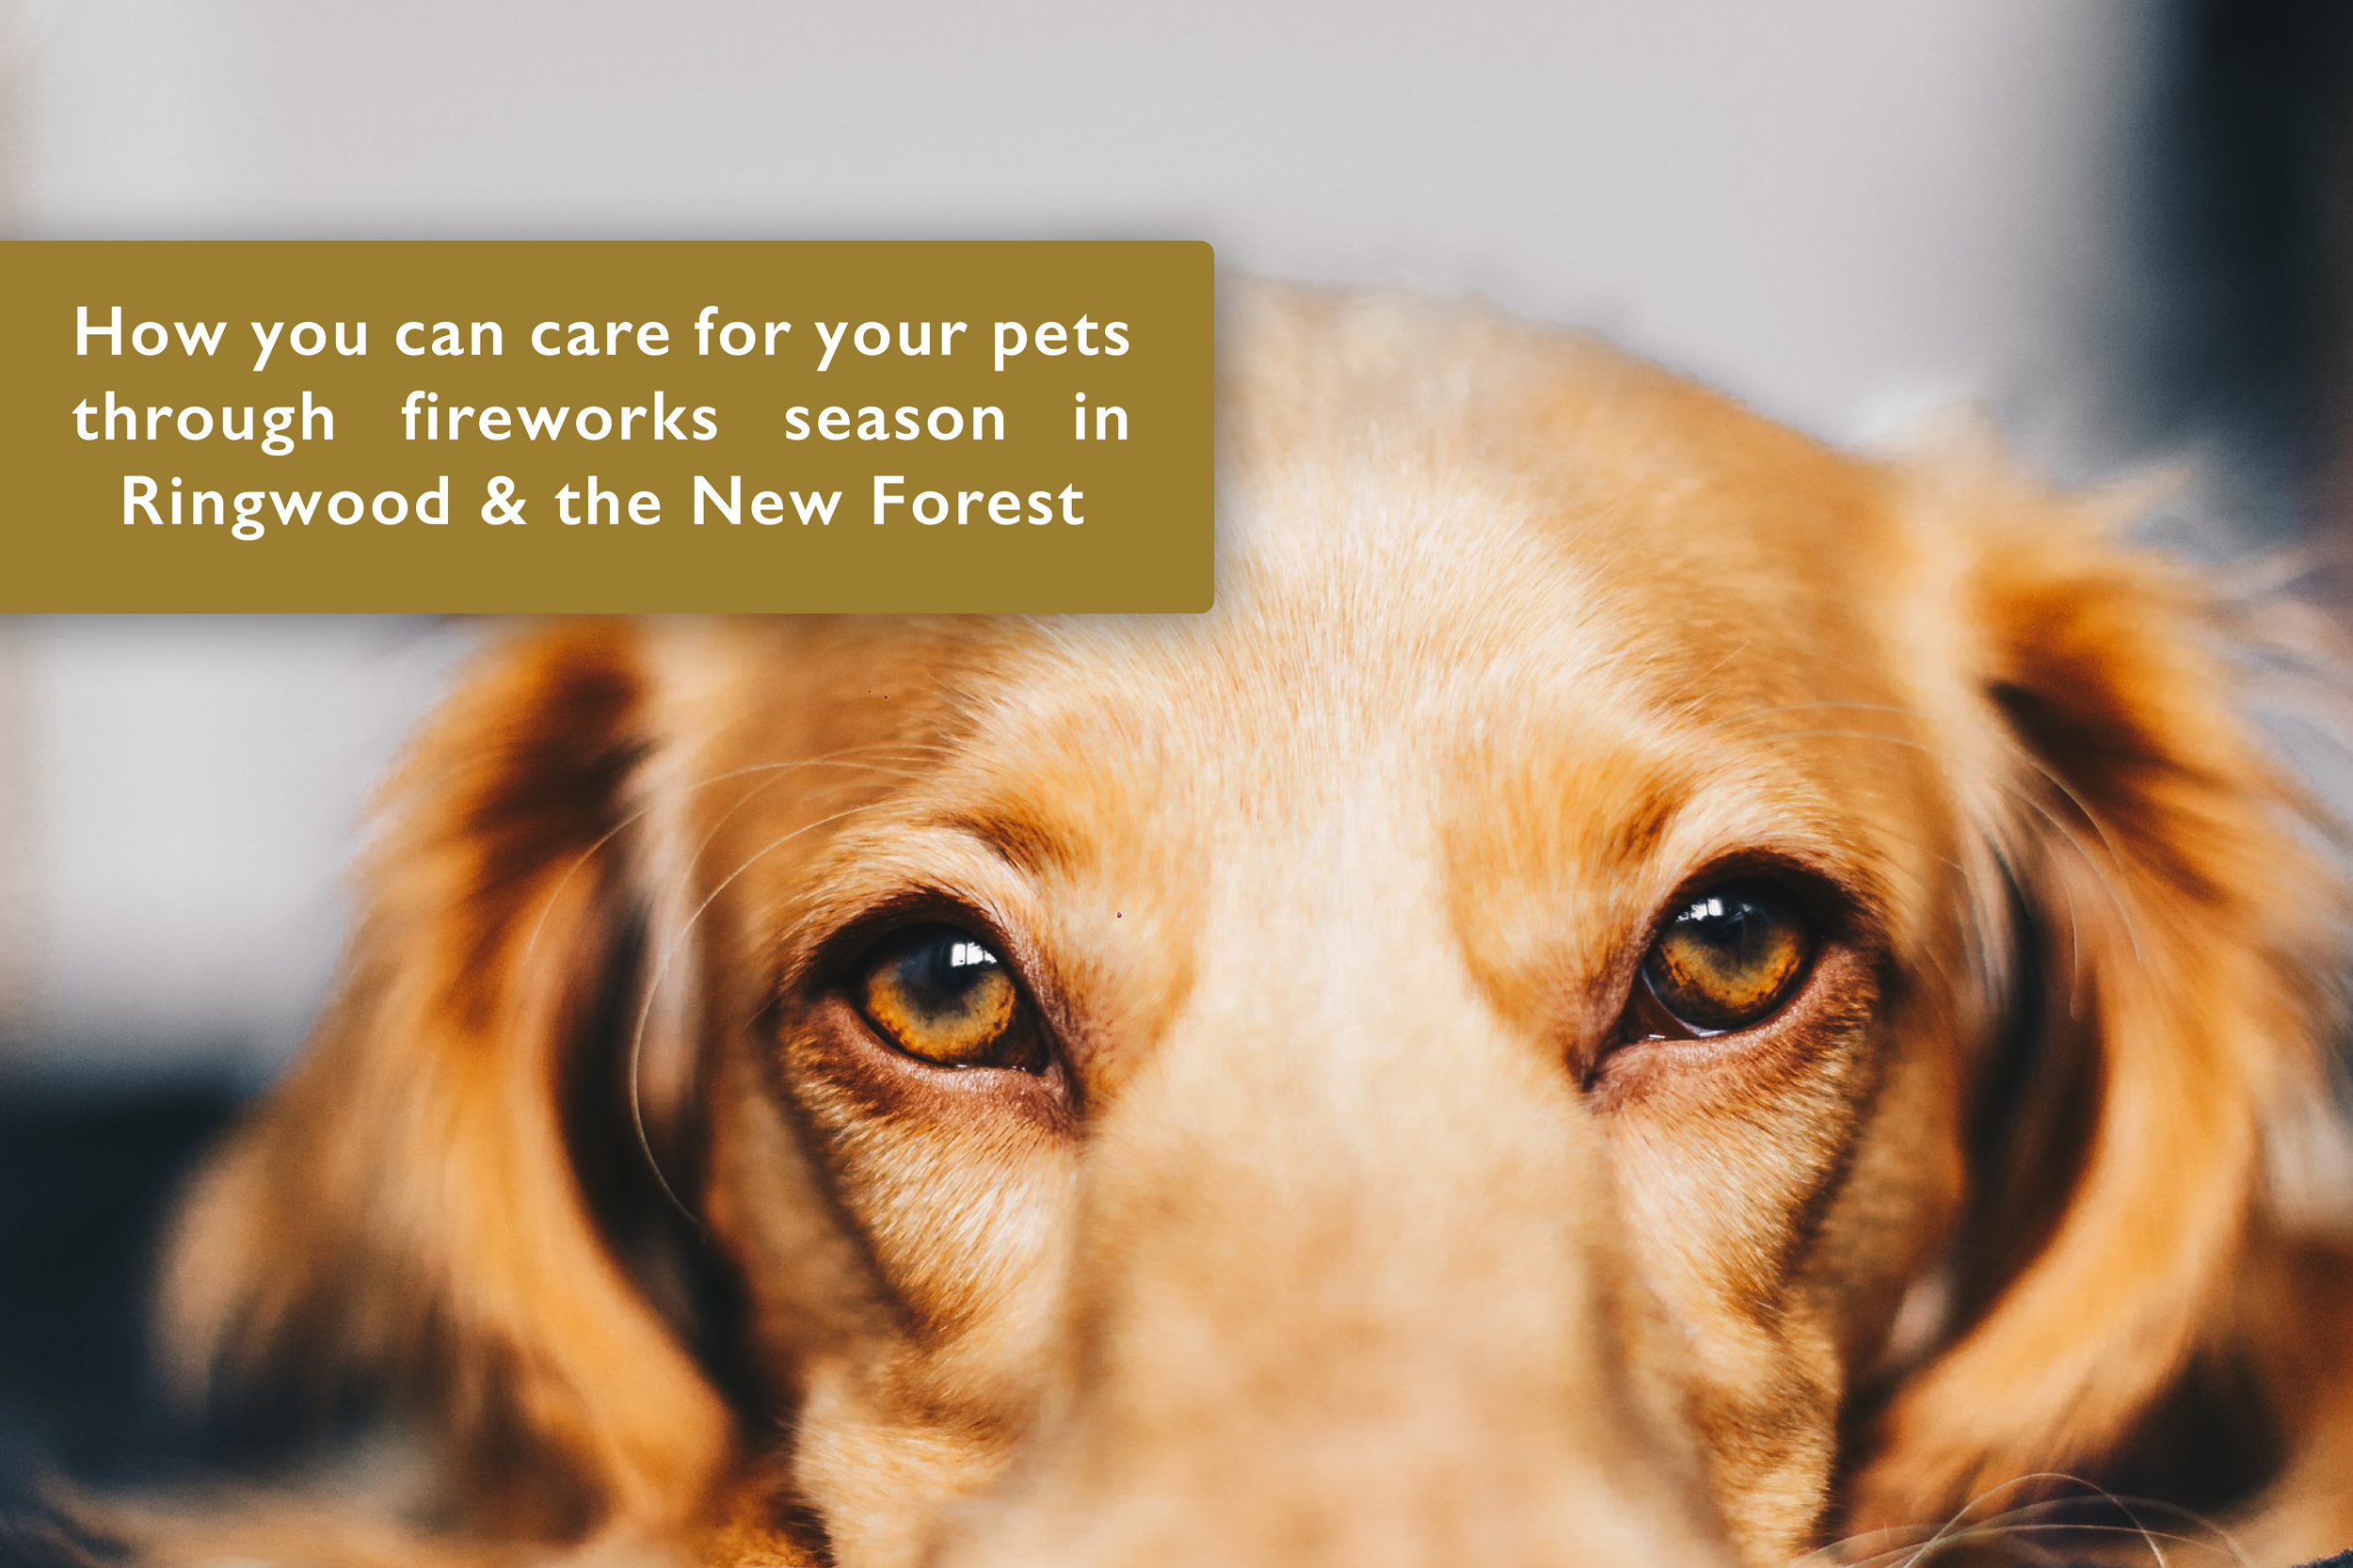 How you can care for your pets through fireworks season in Ringwood & the New Forest